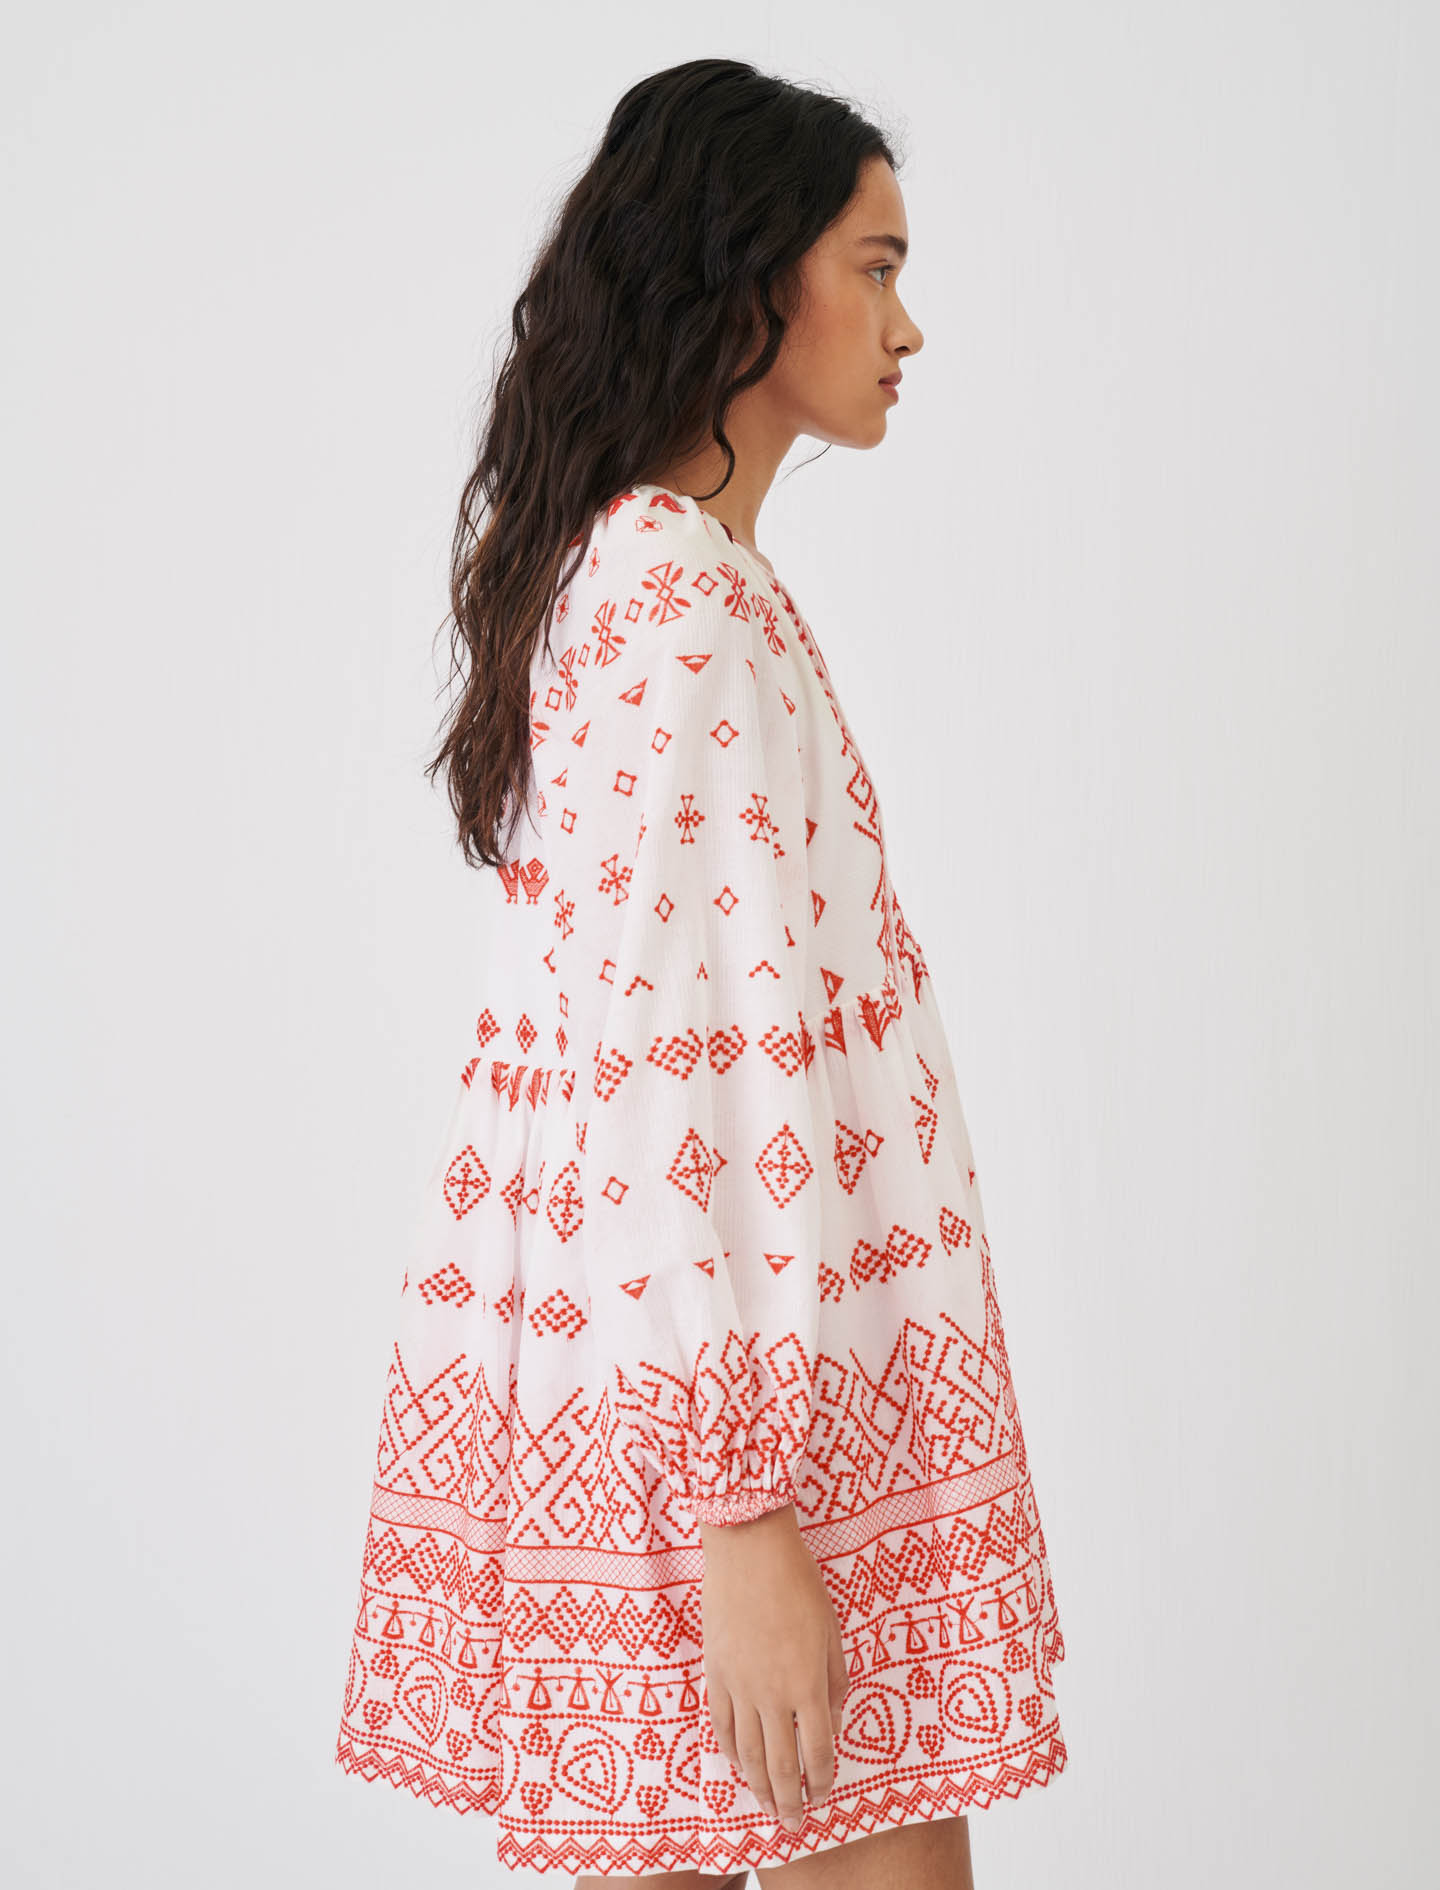 Baby-doll style fully embroidered dress